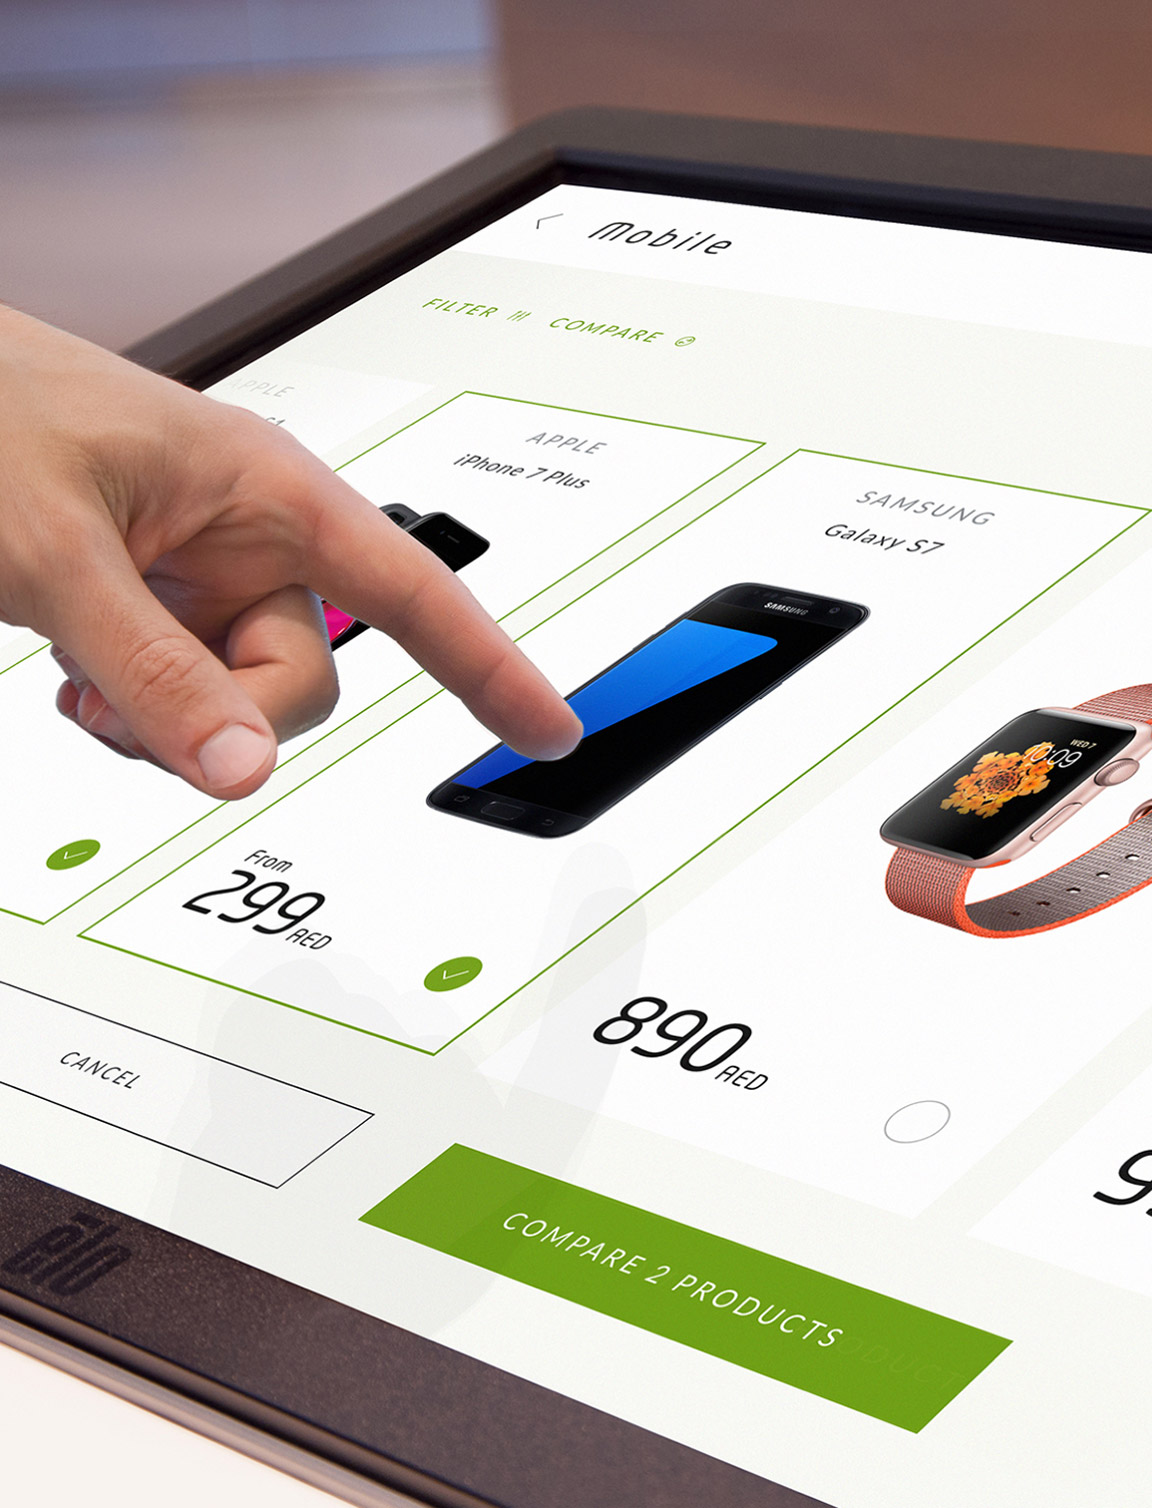 Reimagining the retail digital signage experience for a leading UAE telecom provider